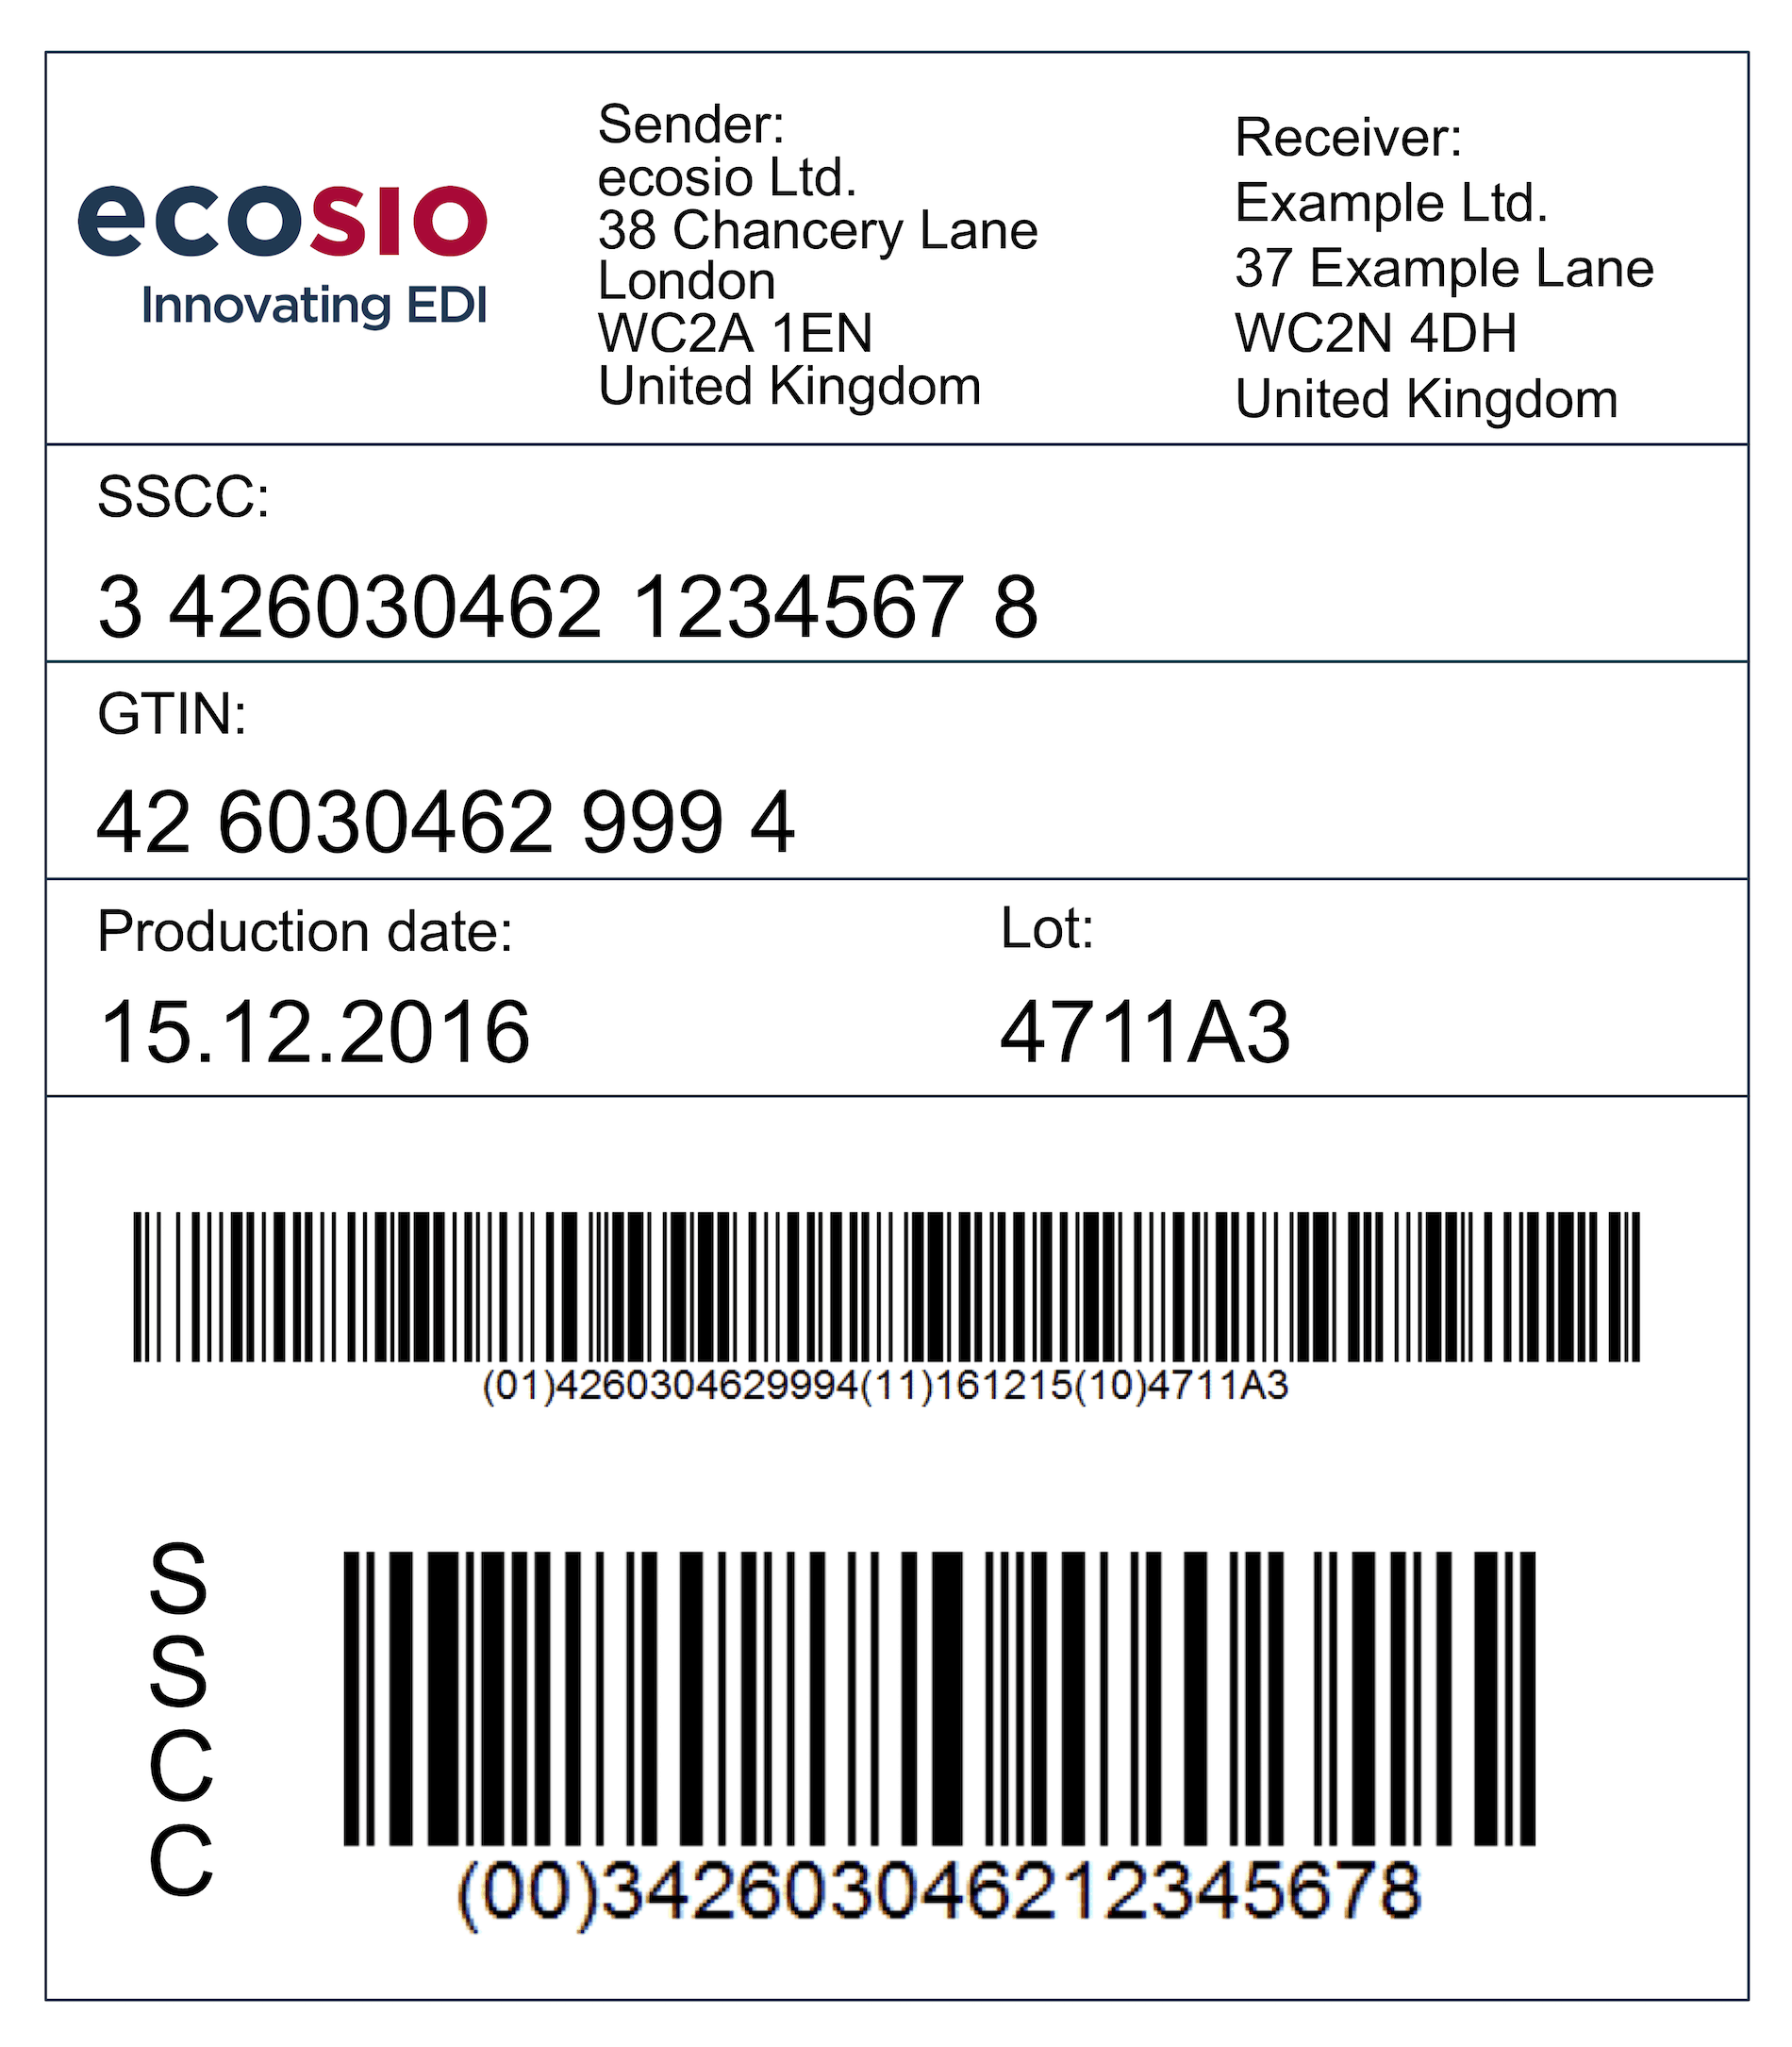 Example of a GS1 Label with SSCC